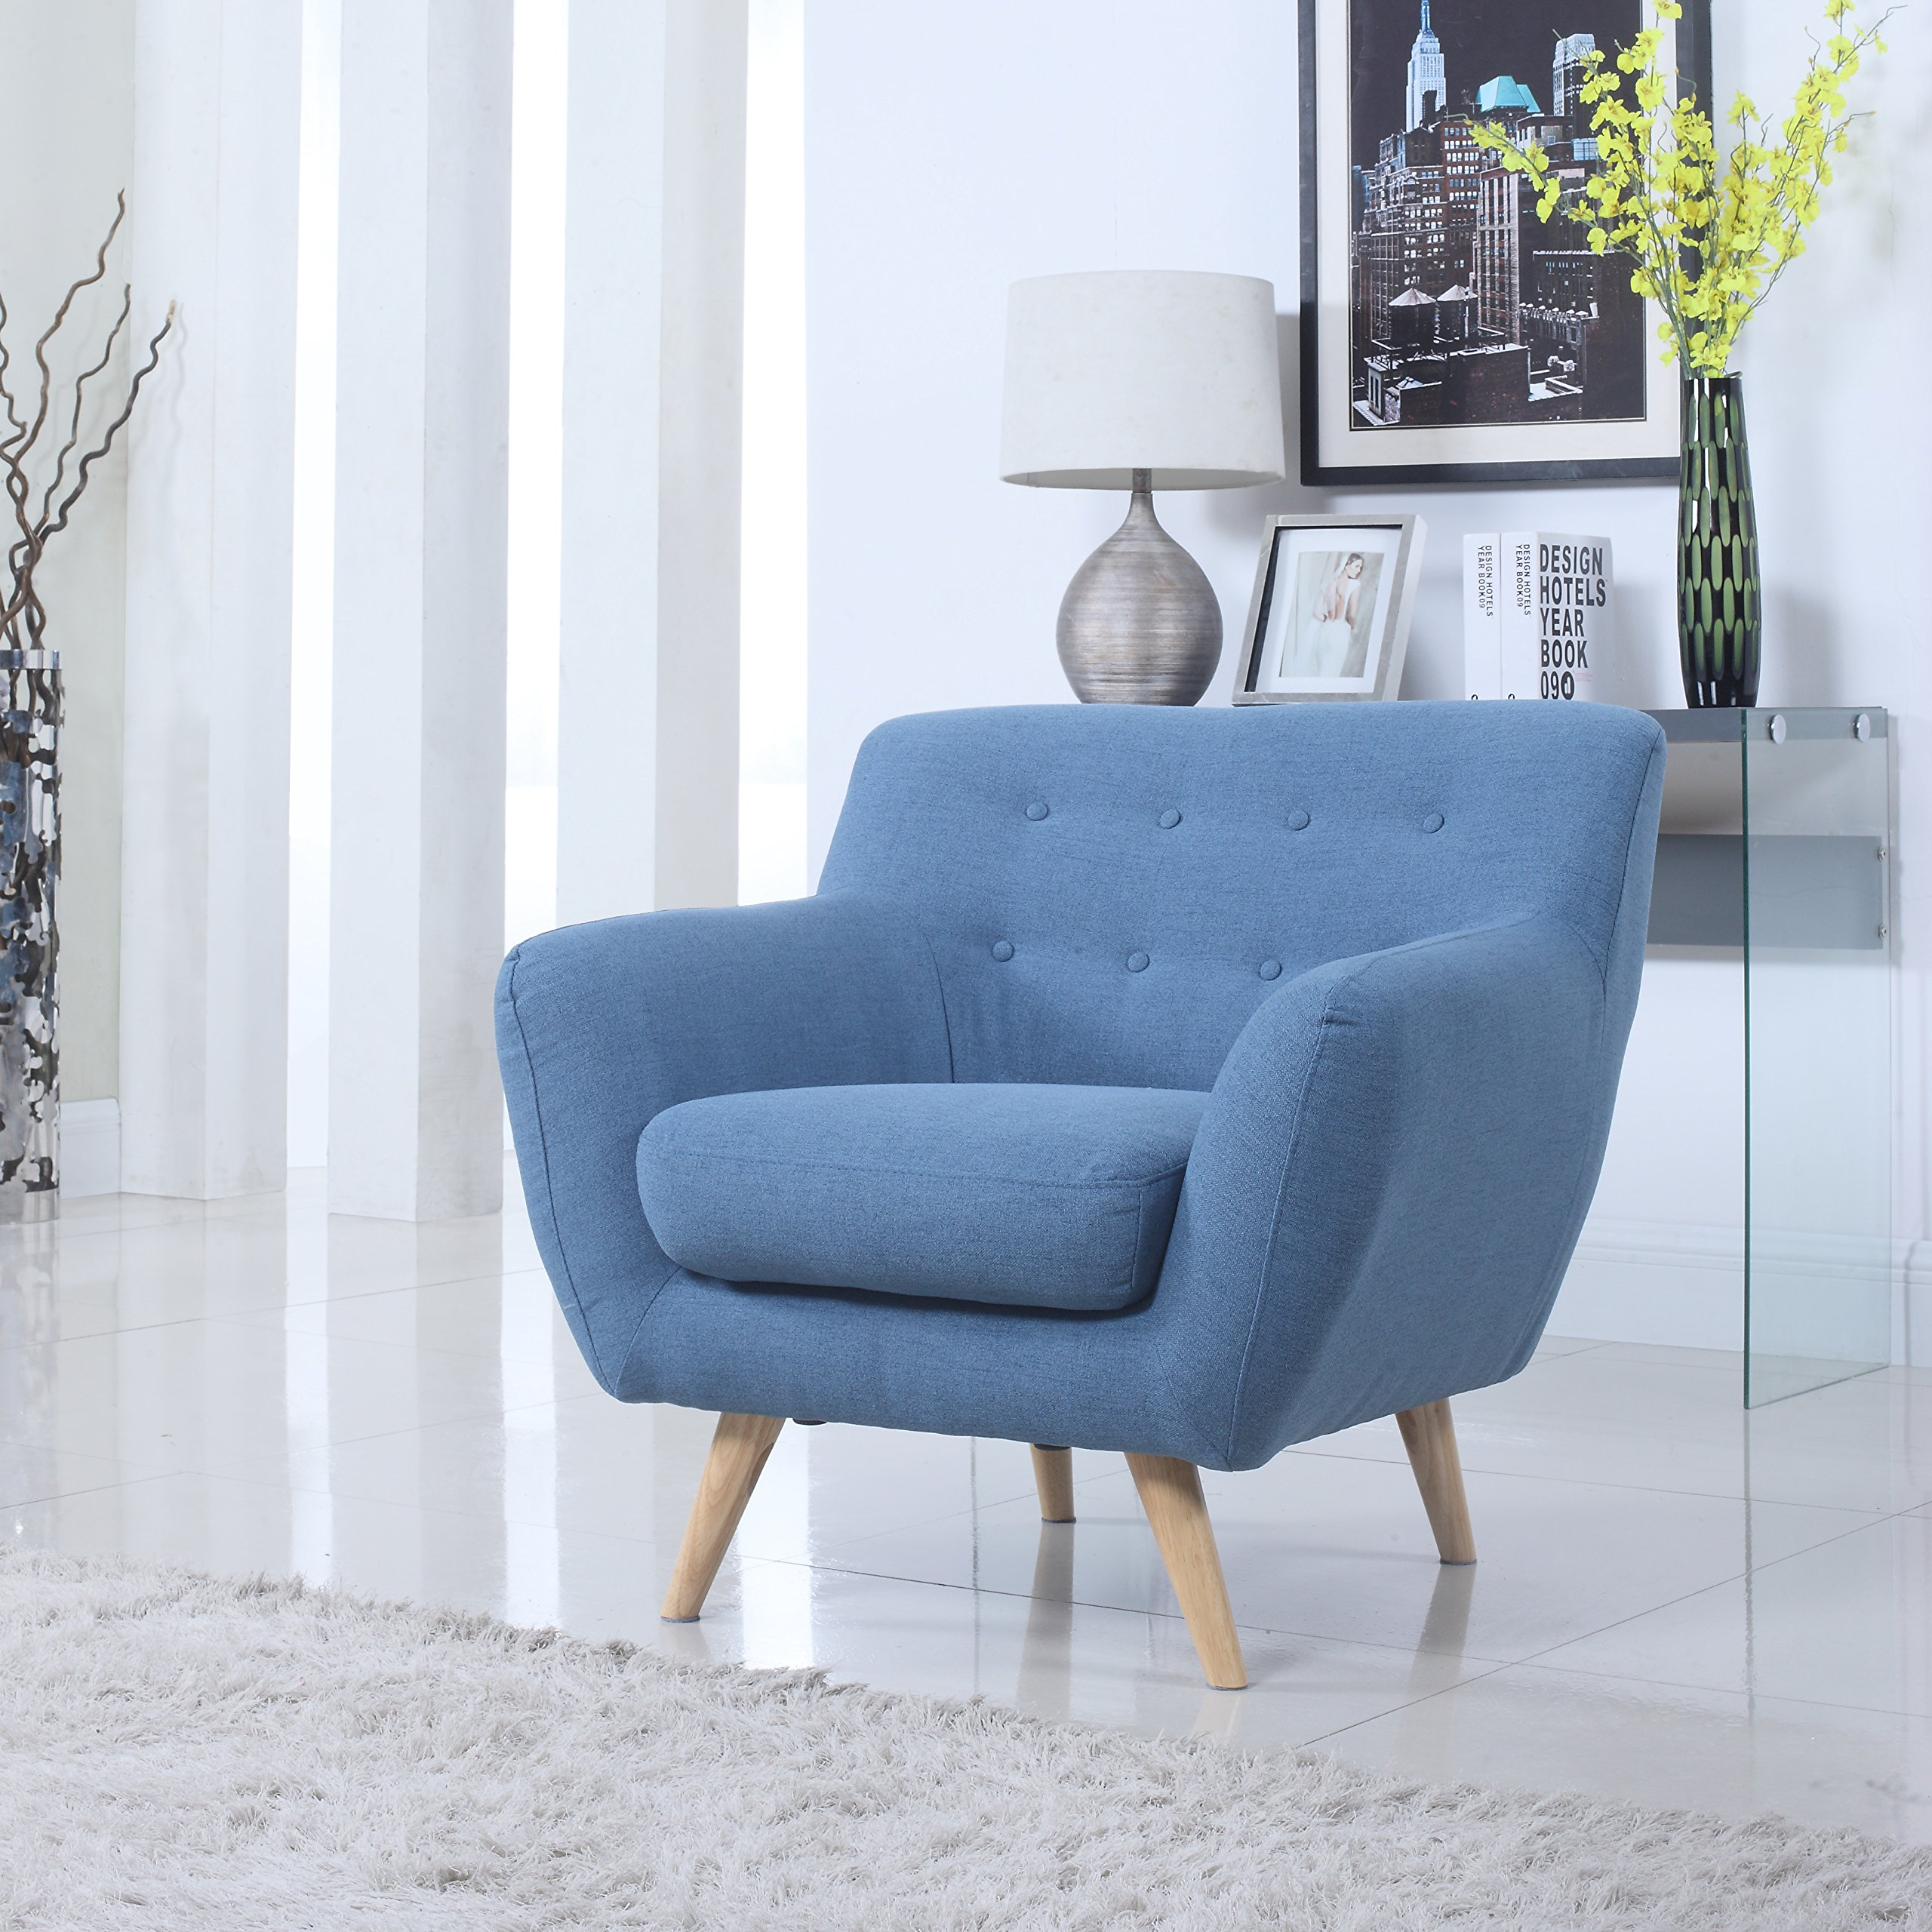 Get Quotations · Modern Mid Century Loveseat/Chair